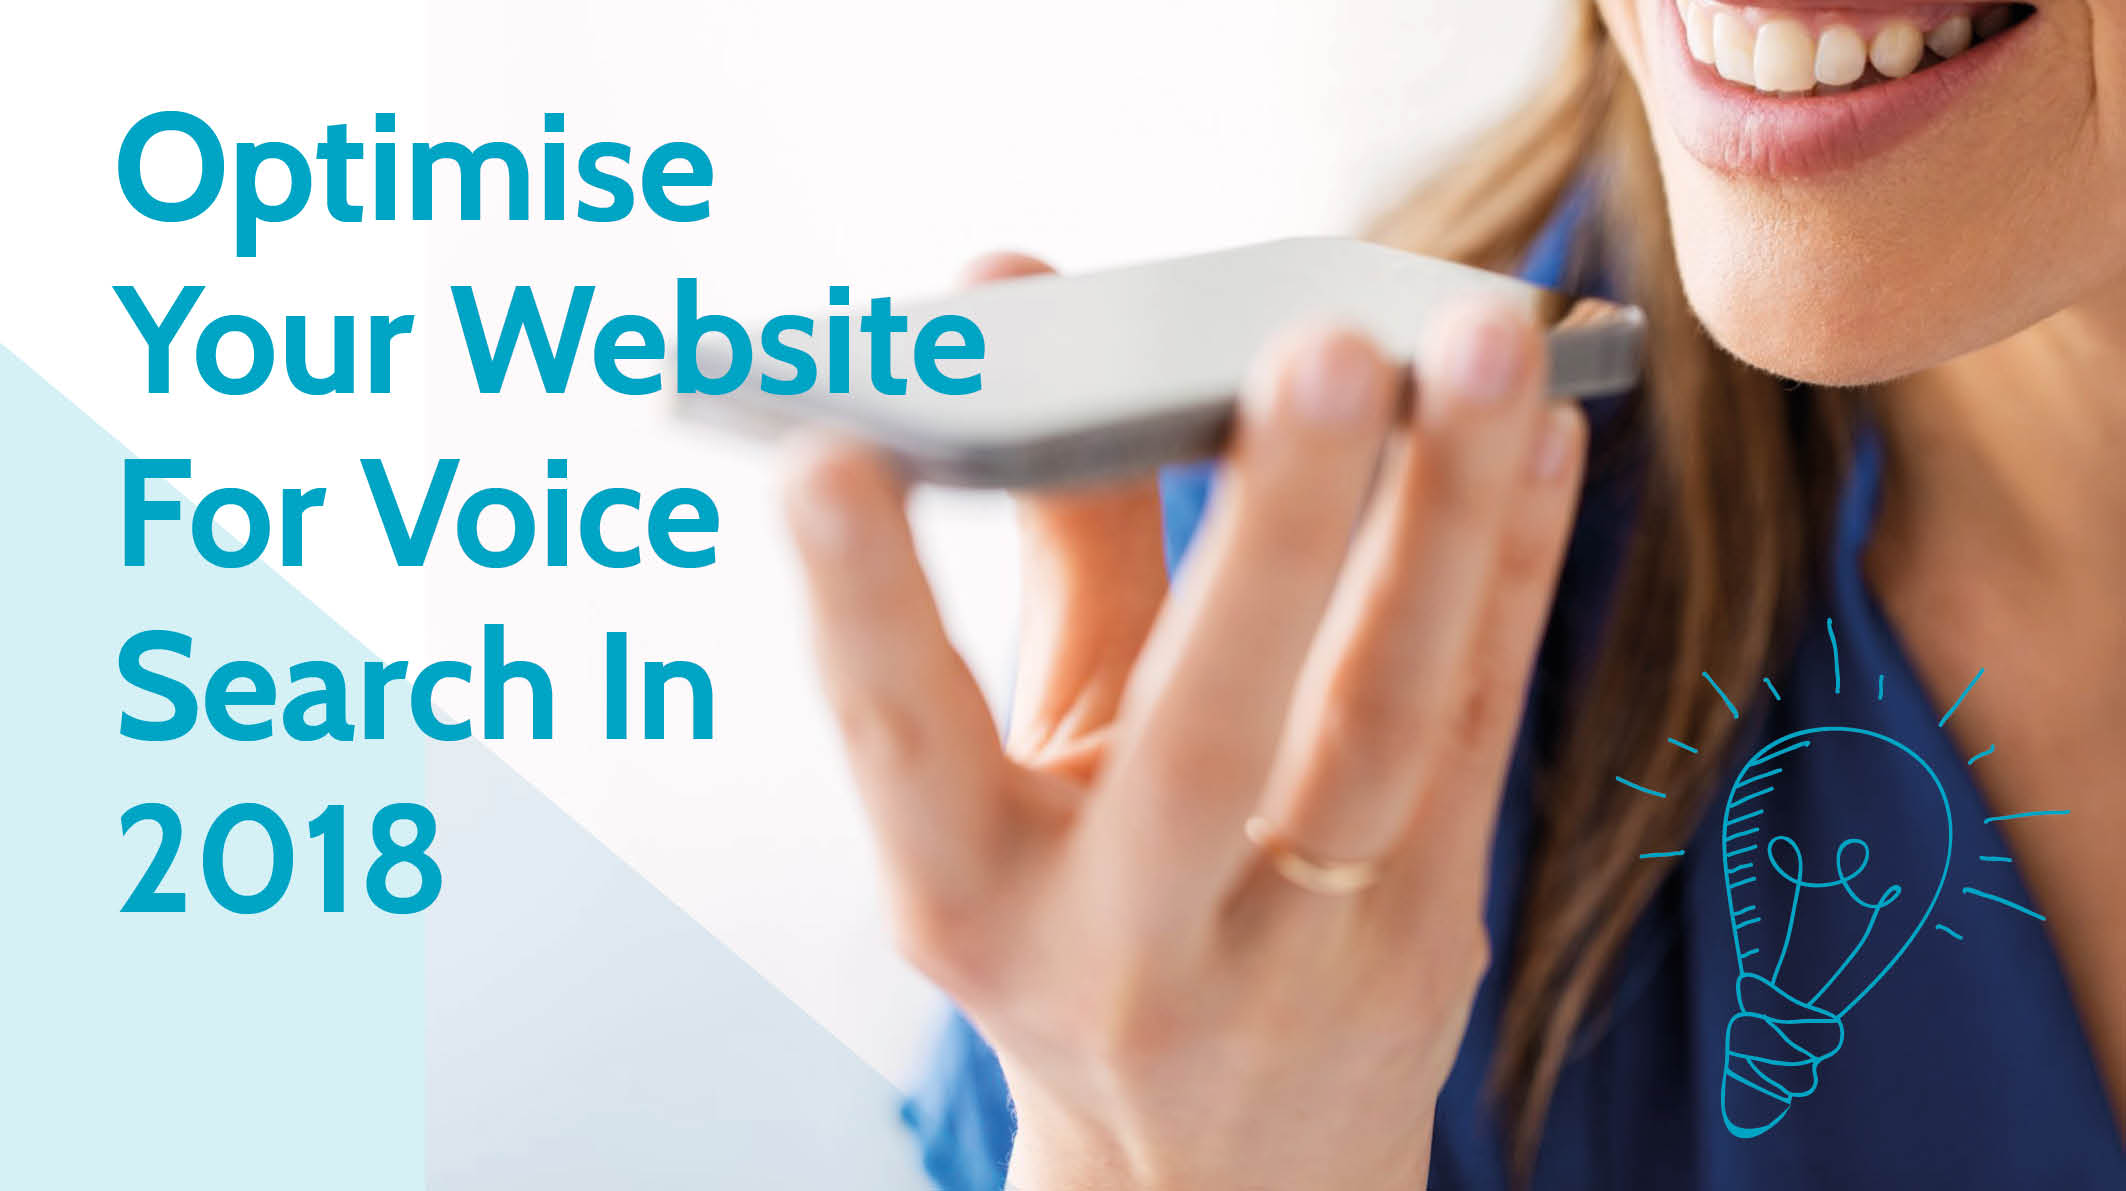 Top 5 Reasons To Optimise Your Website For Voice Search In 2018